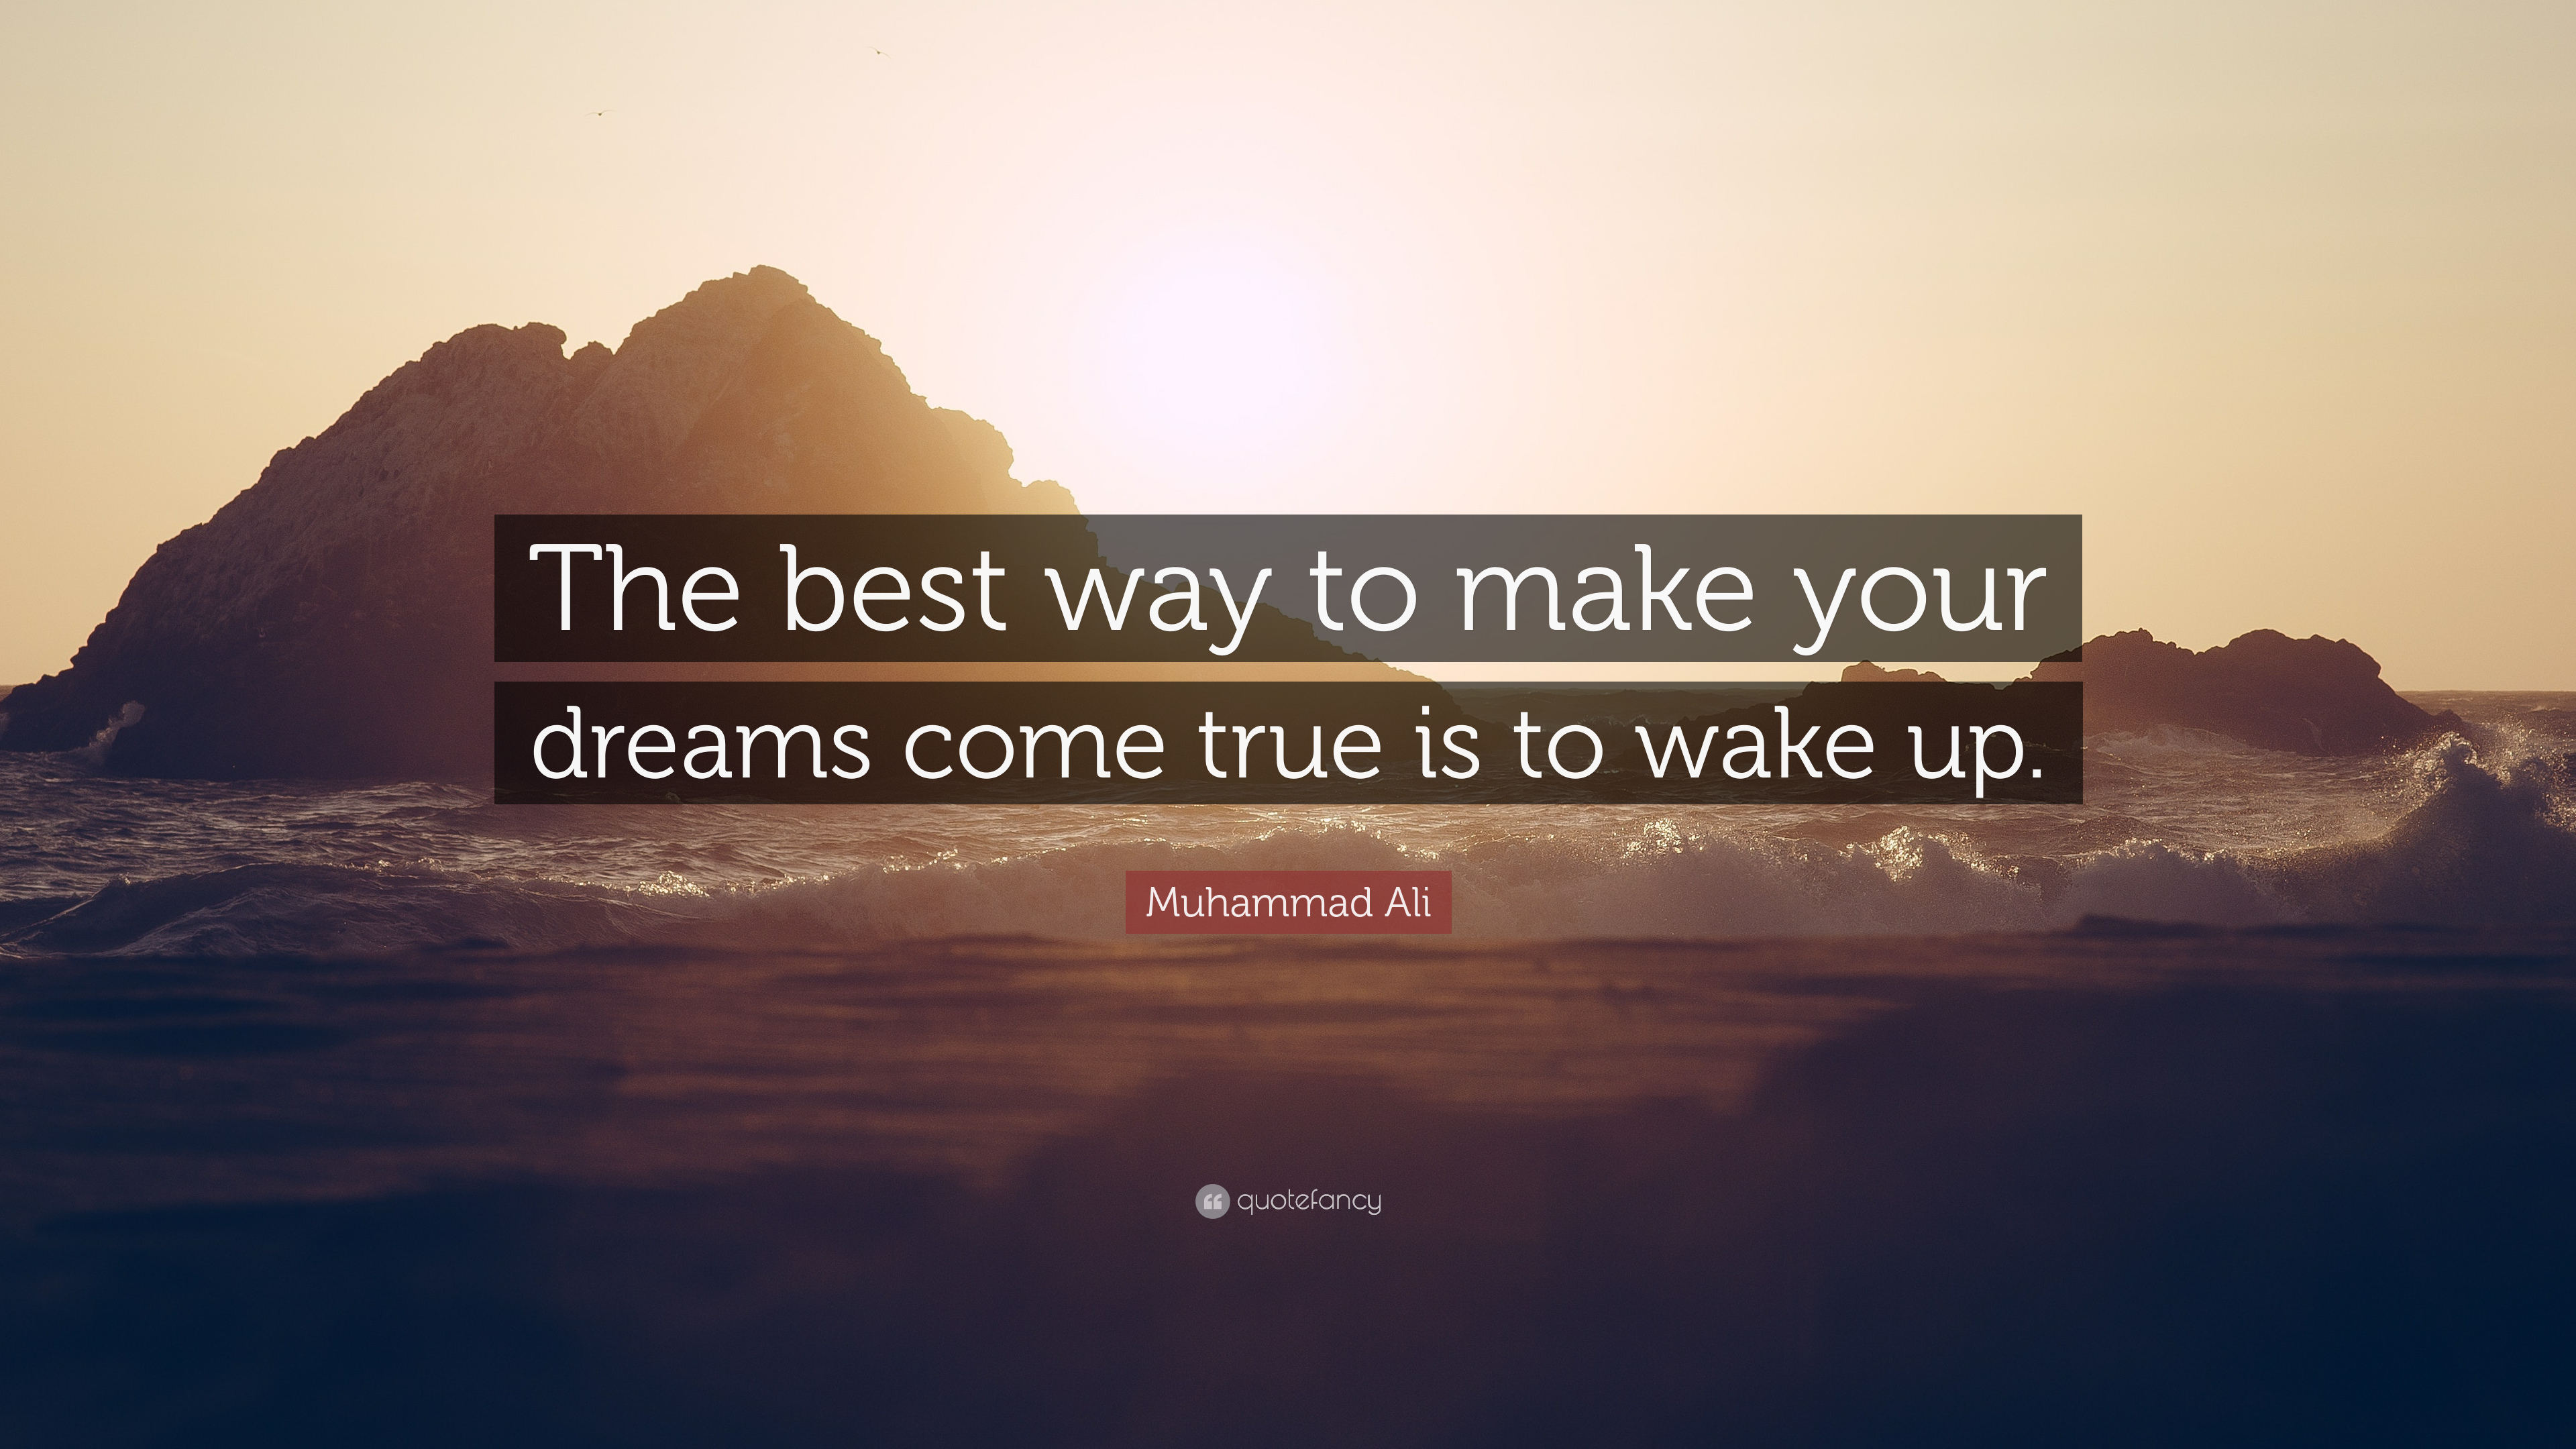 how to make dreams come true quotes